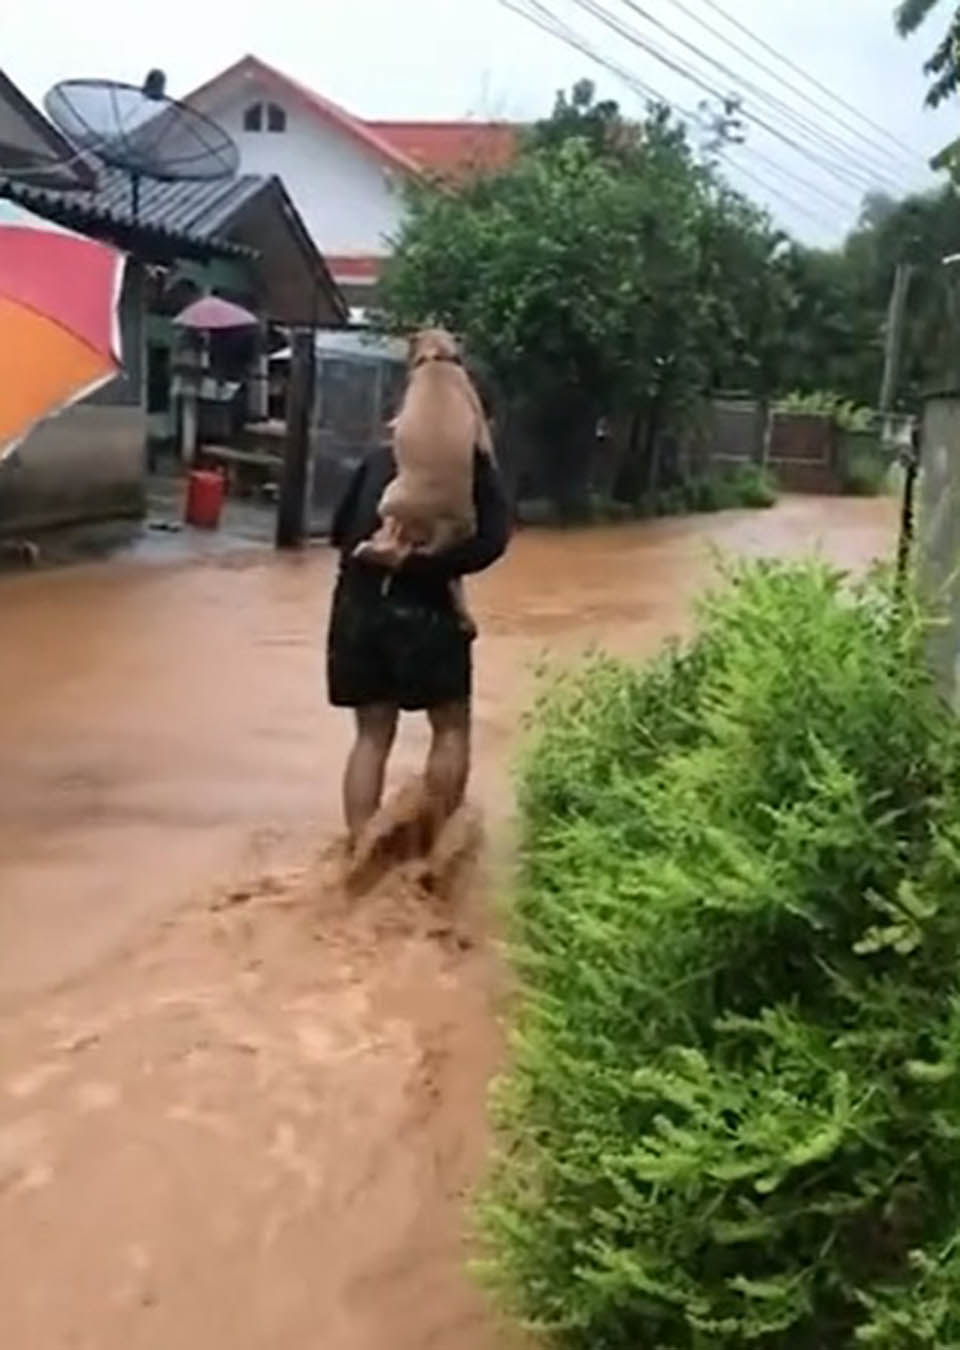 Man carries his dog on his back to rescue him from flooding   Kitten Vs Puppy